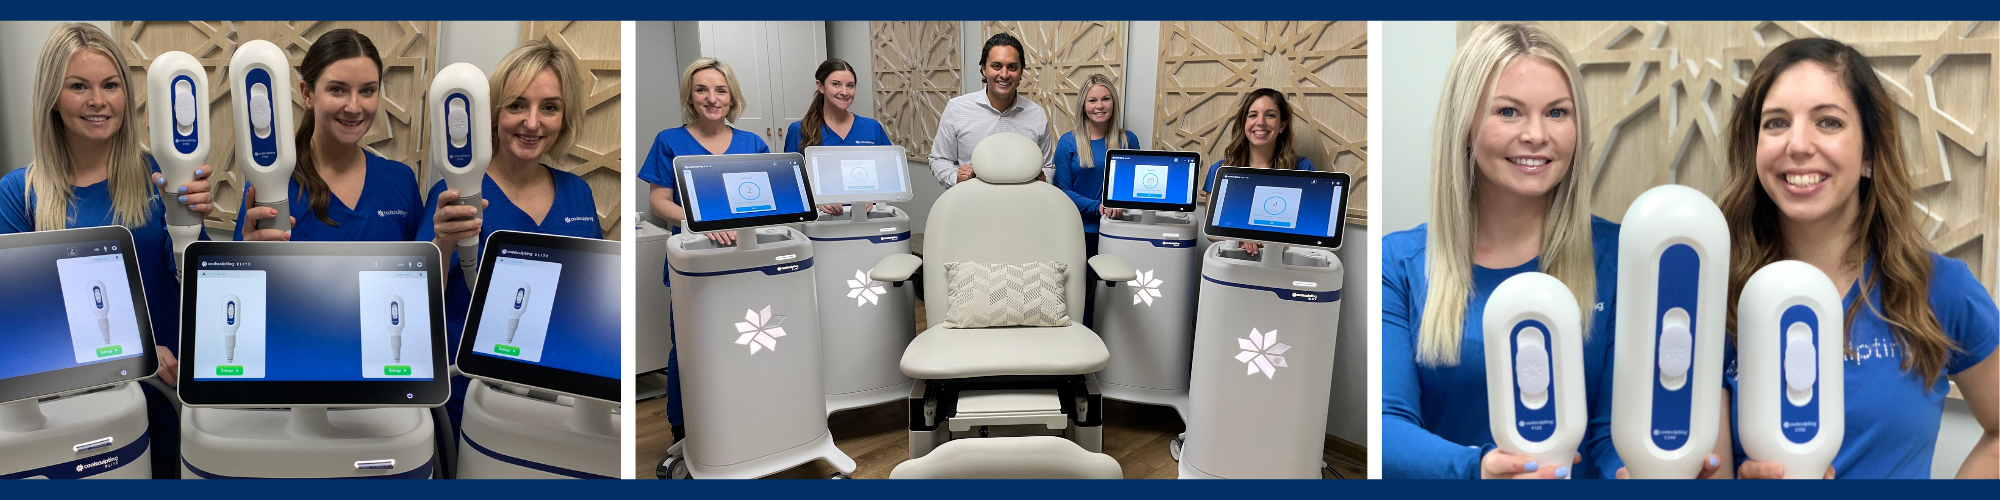 CoolSculpting Elite Specialists at CGT Aesthetics in Evergreen Park Illinois 60805